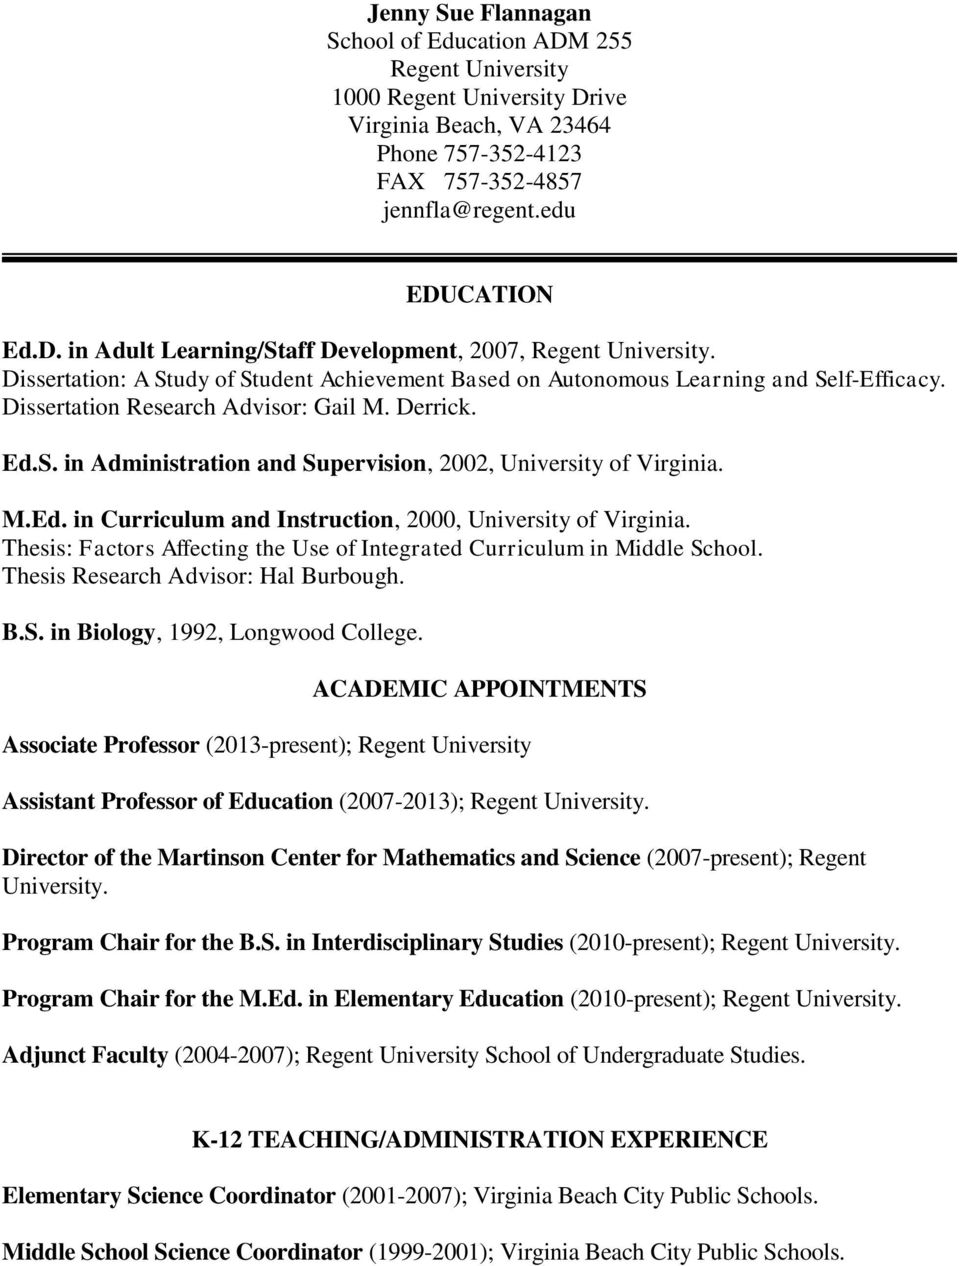 M.Ed. in Curriculum and Instruction, 2000, University of Virginia. Thesis: Factors Affecting the Use of Integrated Curriculum in Middle School. Thesis Research Advisor: Hal Burbough. B.S. in Biology, 1992, Longwood College.